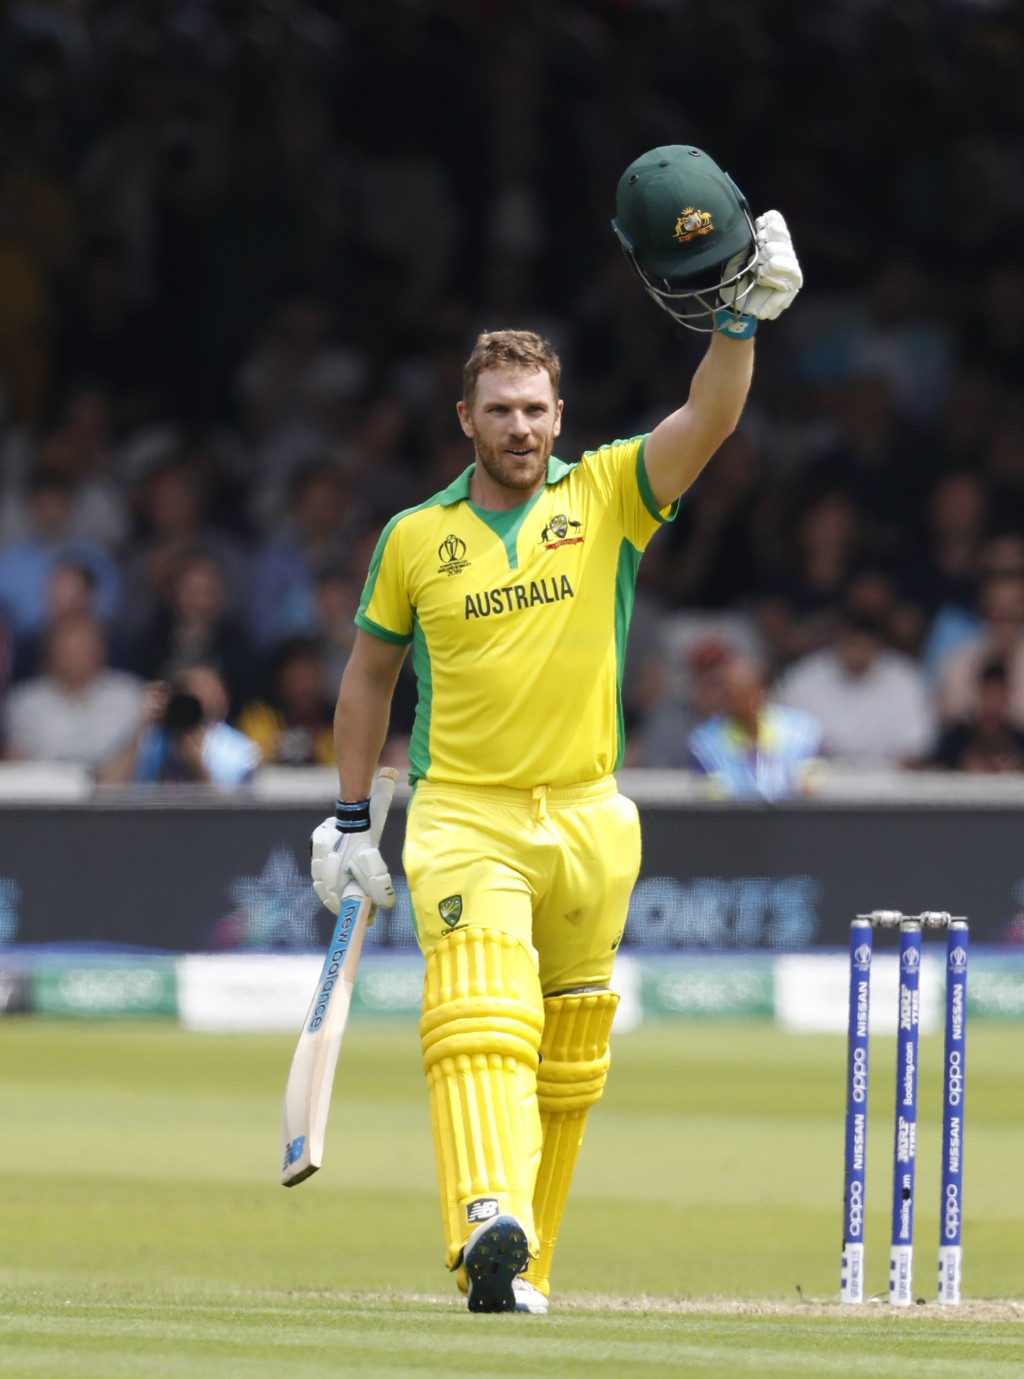 Australia's captain Aaron Finch celebrates getting 100 runs not out during their Cricket World Cup match between England and Australia at Lord's crick...